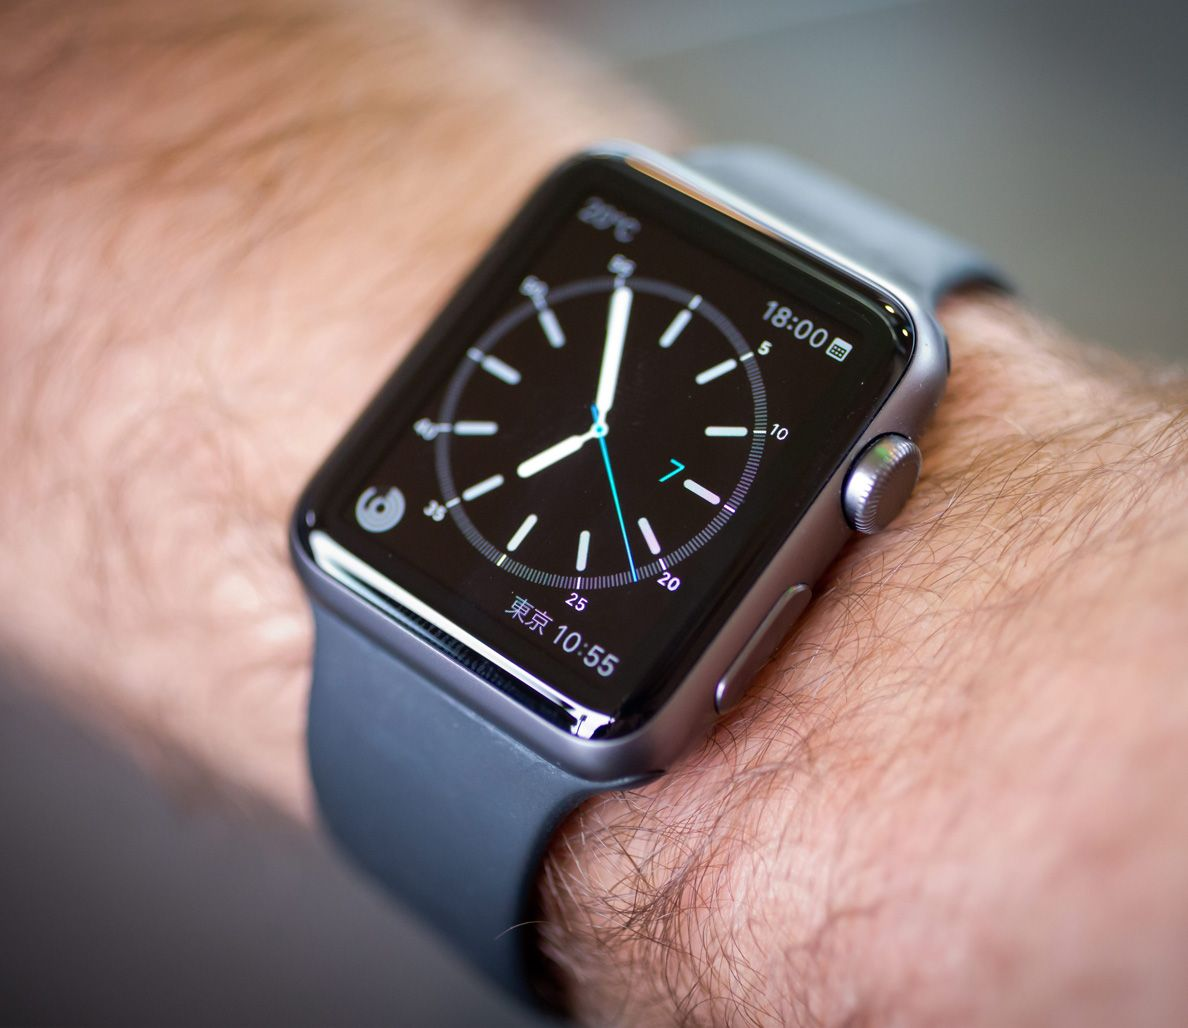 Best Apple Watch Apps - 3 Minute Mindfulness - The Best